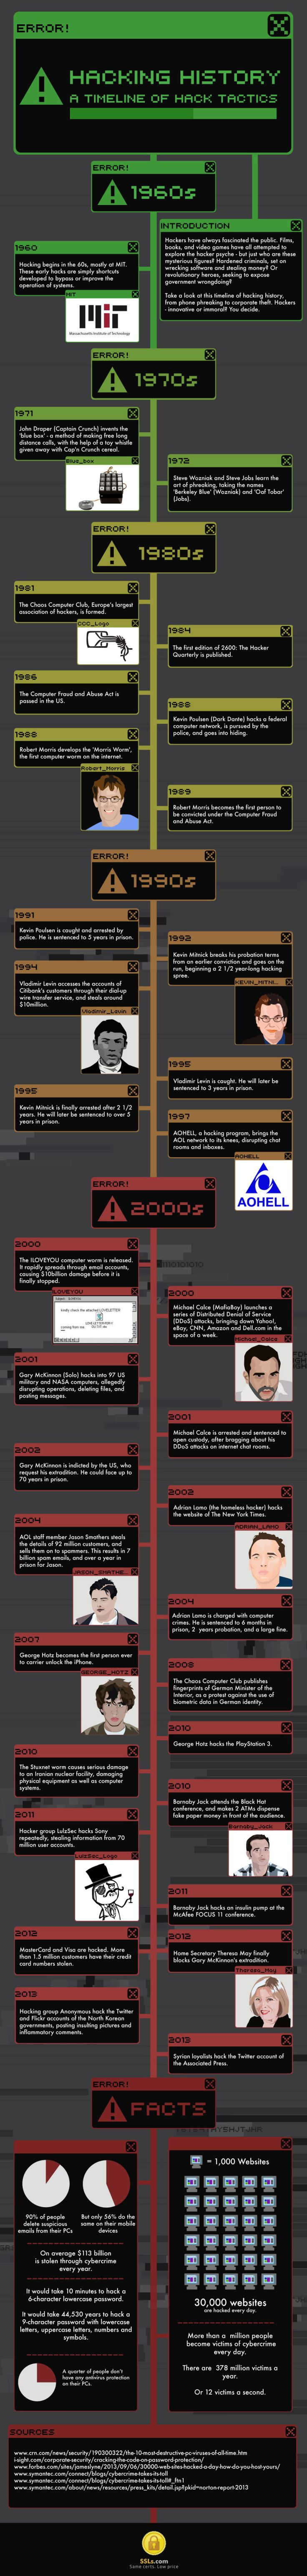 Hacking History Infographic  #infographic #Hacking